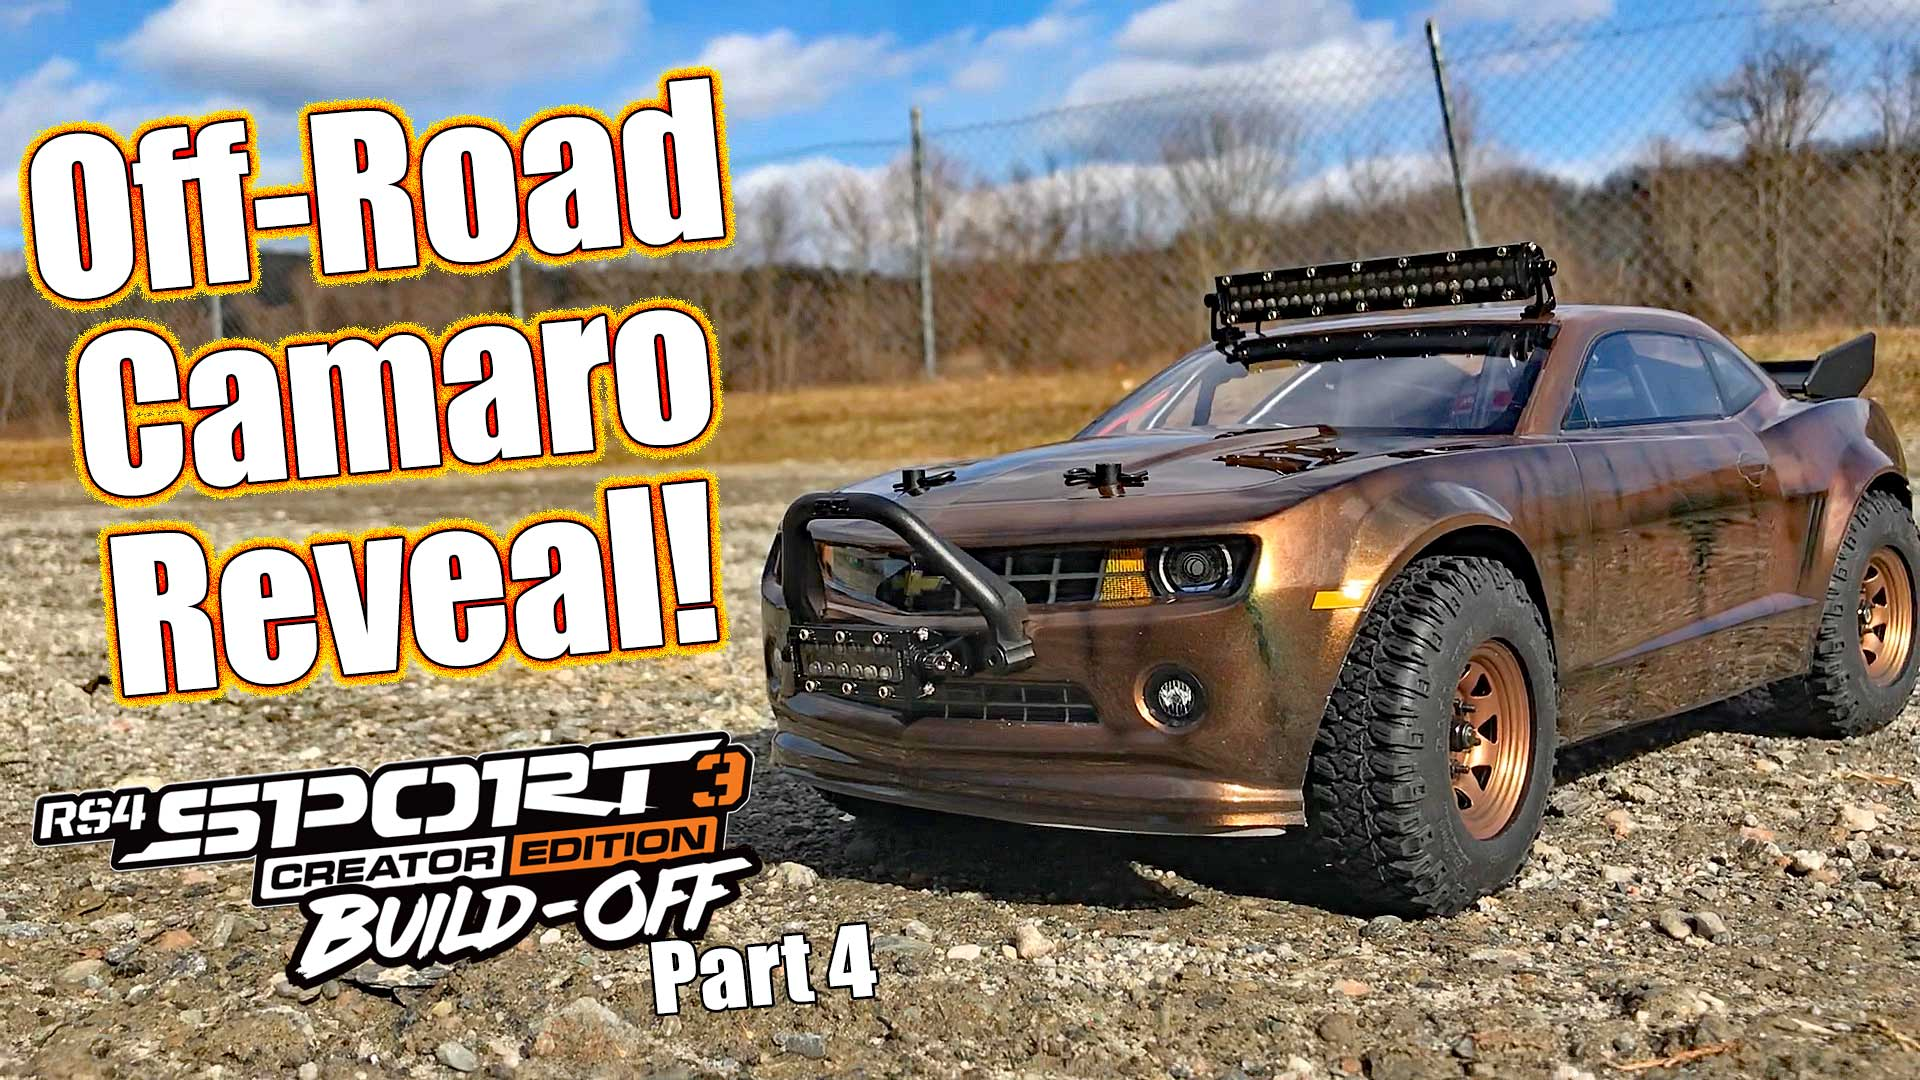 WILD Off-Road Camaro! – HPI Racing RS4 Sport 3 Build-Off Part 4